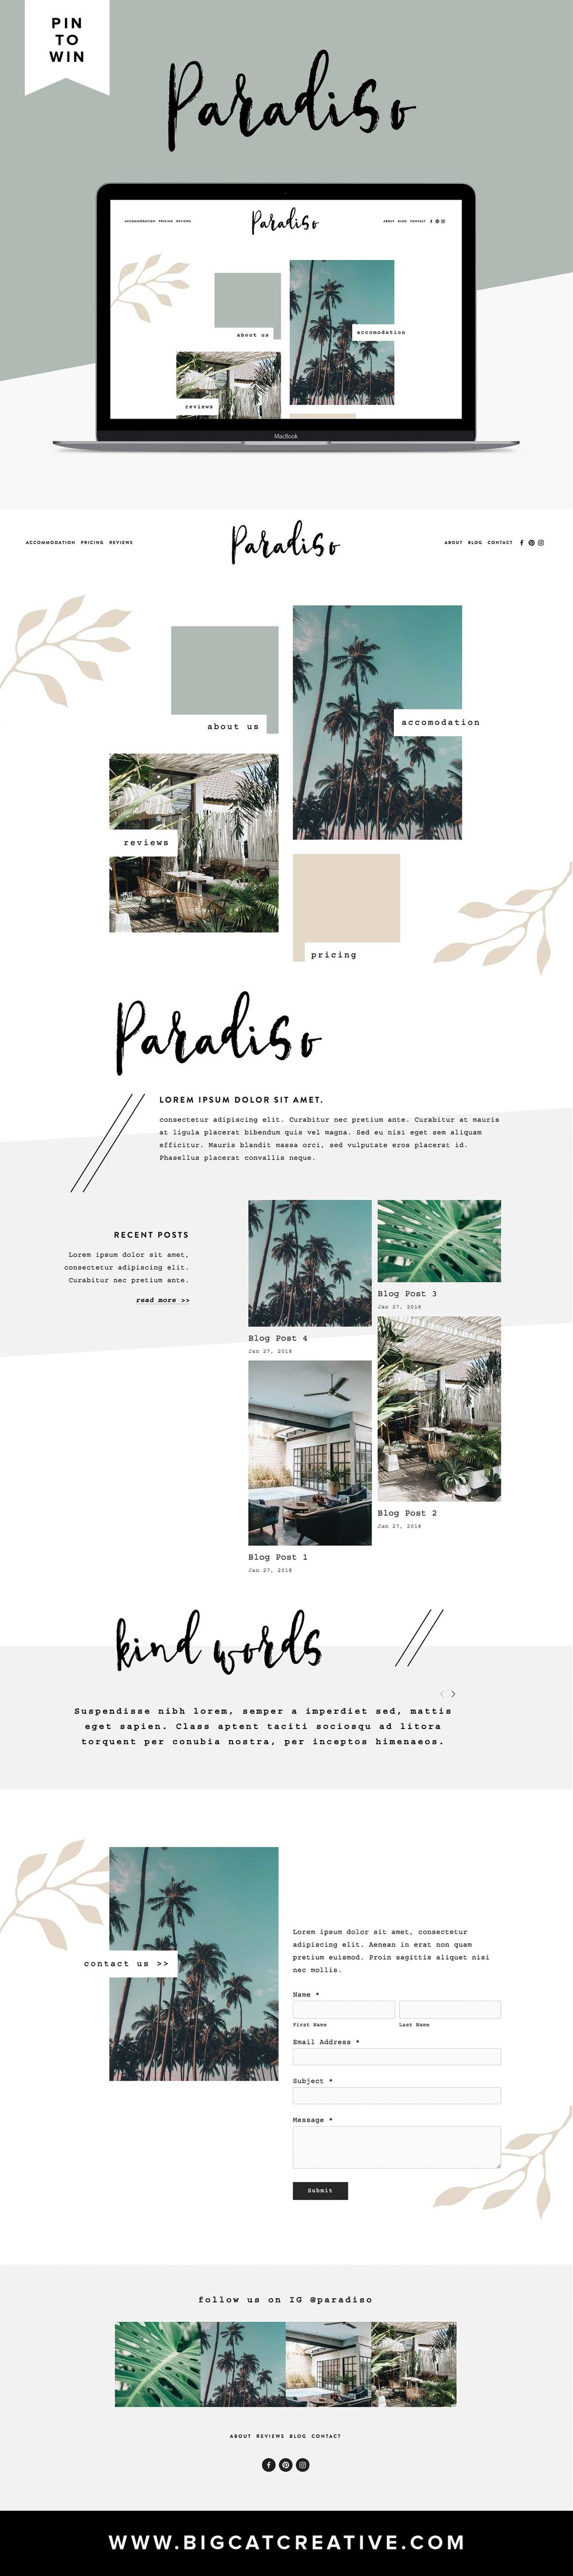 PIN IT TO WIN IT! PARADISO SQUARESPACE TEMPLATE IS LIVE. Paradiso is a mix of modern and classic styles with a funky, tropical vibe. This template is perfect for a business, blogger or influencer that wants to display a lot of imagery. You can customize this template any way you like to suit your business. By Big Cat Creative | Squarespace Templates | Website Templates | Squarespace Design |  Squarepace Themes | Squarespace Inspiration | Squarespace Website Design Inspiration | Squarespace Blog Design | Website Design Layout | Web Design